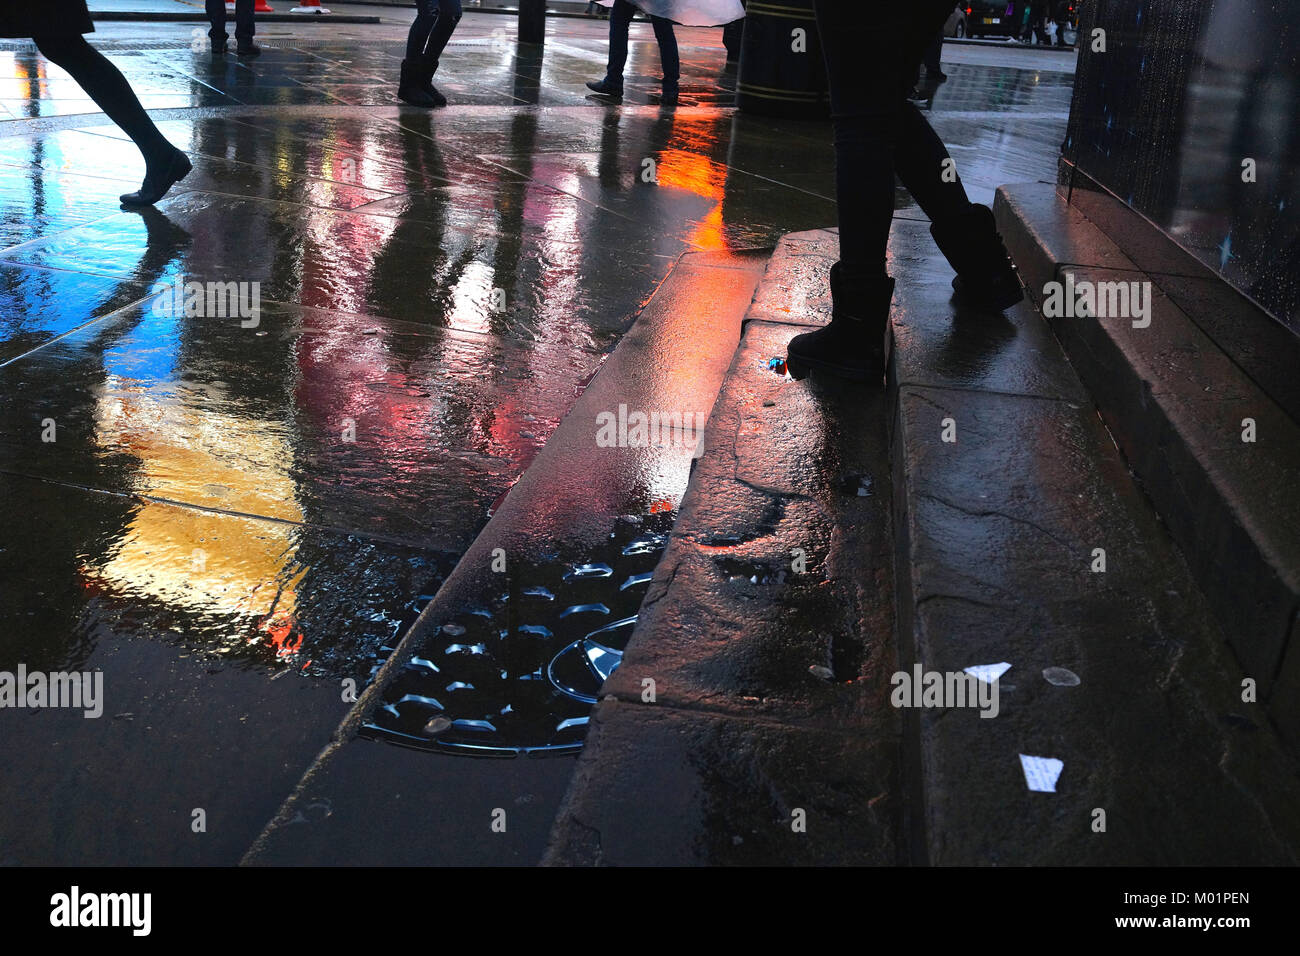 Legs and feet (Piccadilly Circus, London) - Stock Image